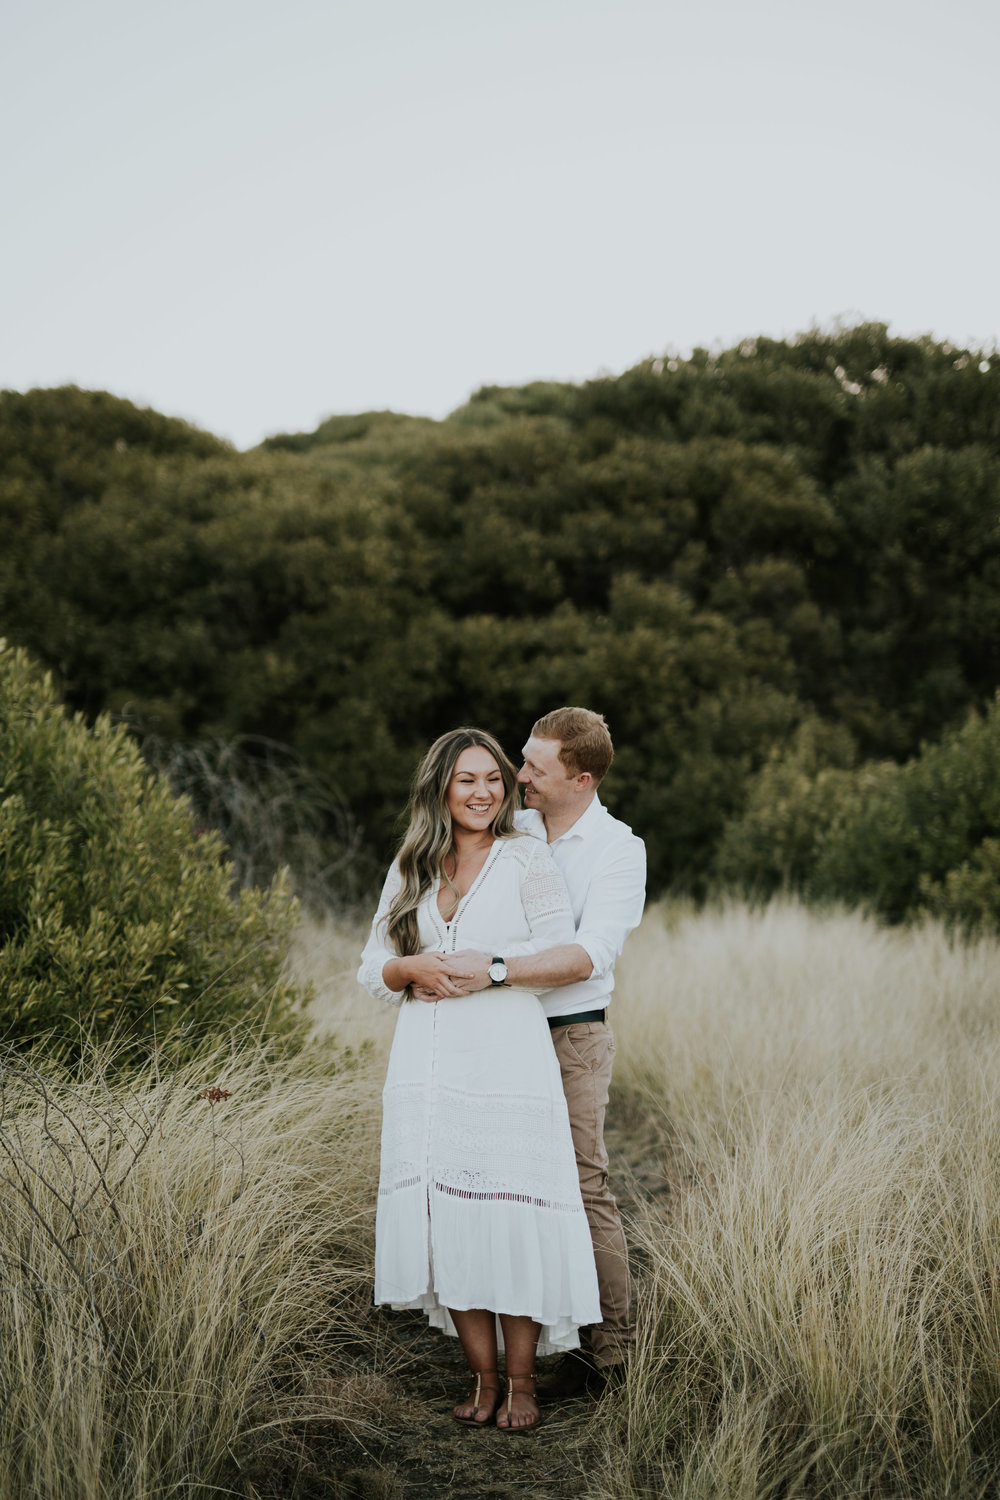 shanae+grant+Kiama+Engagement+Session-14.jpg